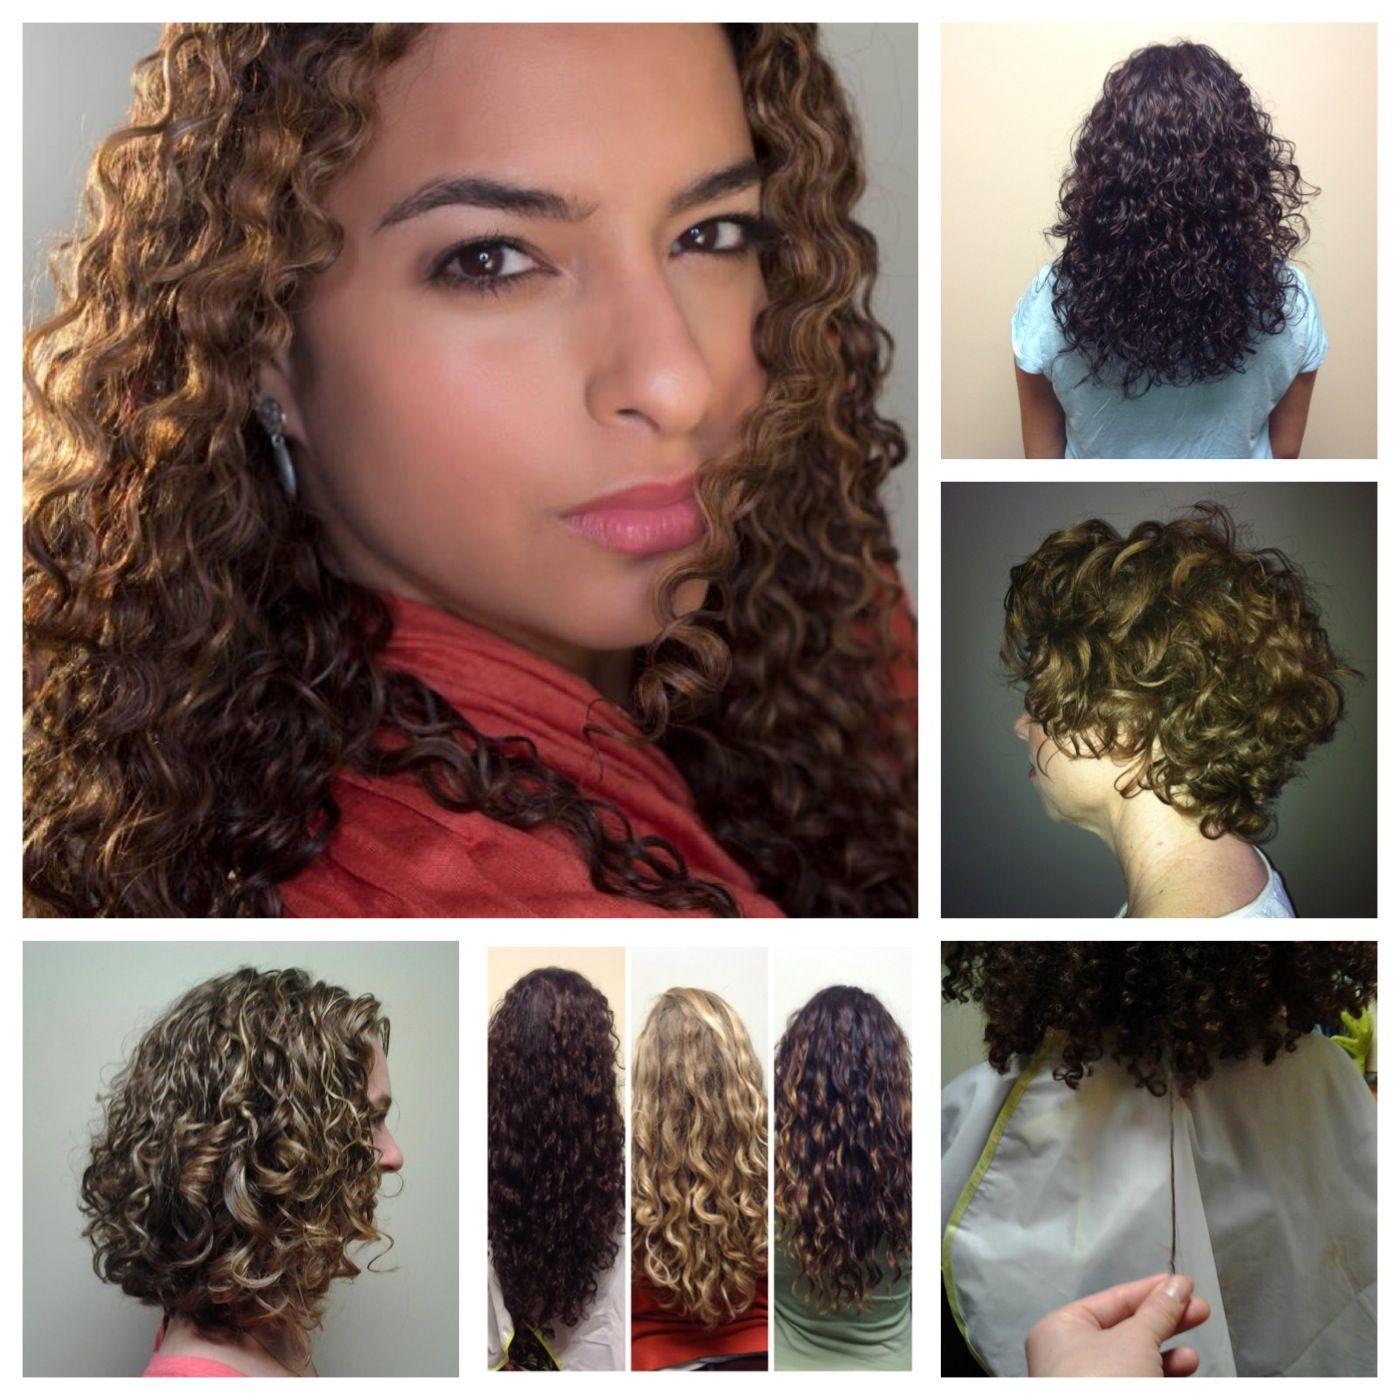 Salon Feature: Scott Musgrave of Scott Musgrave Hair in Cary, NC. |  Jessicurl | Curly Hair Products | Hair styles, Curls for long hair, Wand  hairstyles